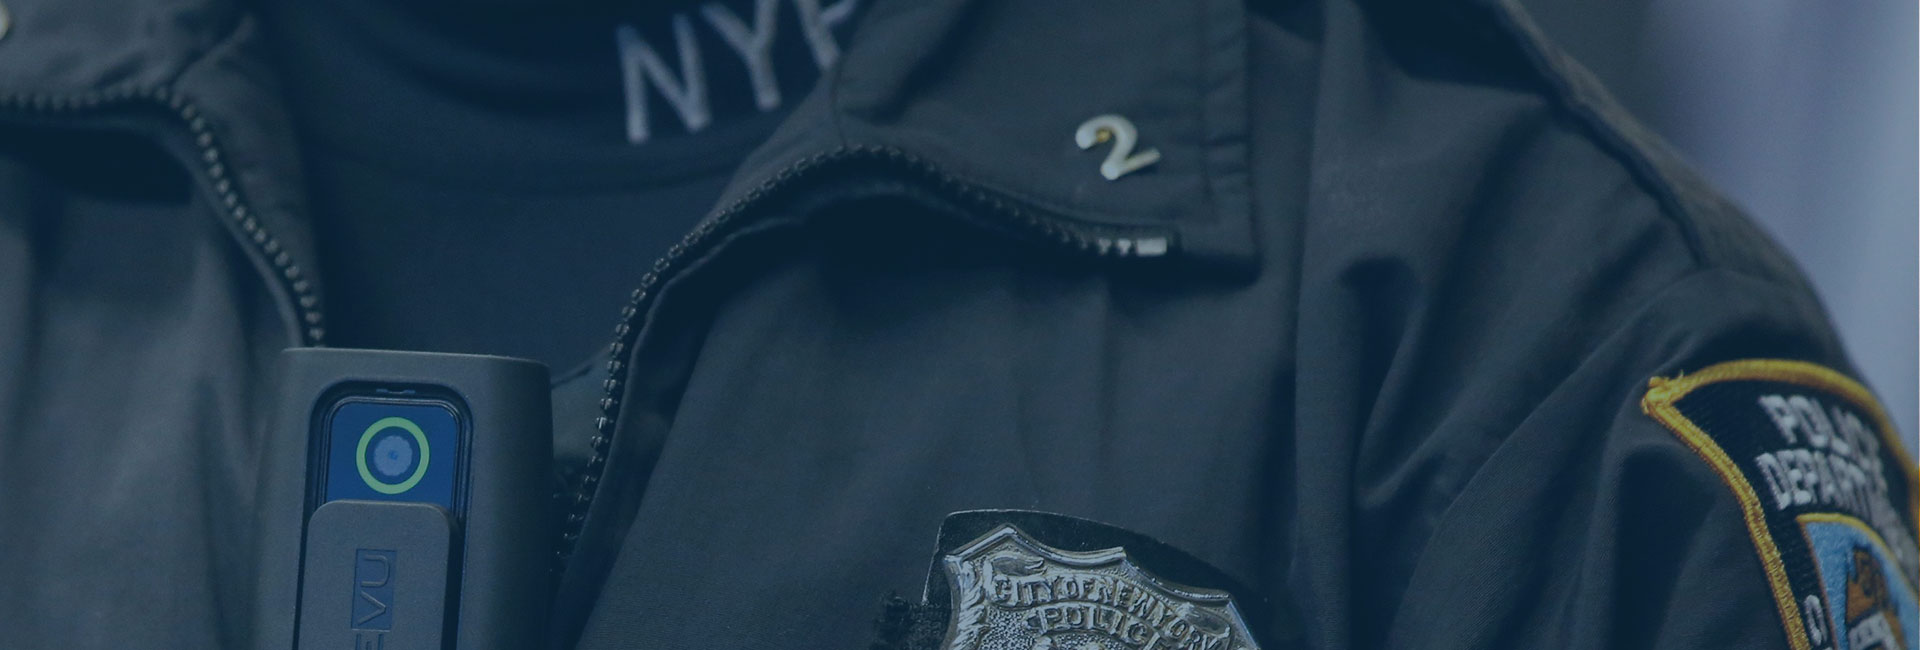 New York's State of Mind Reflects Progressive Public Records Measures